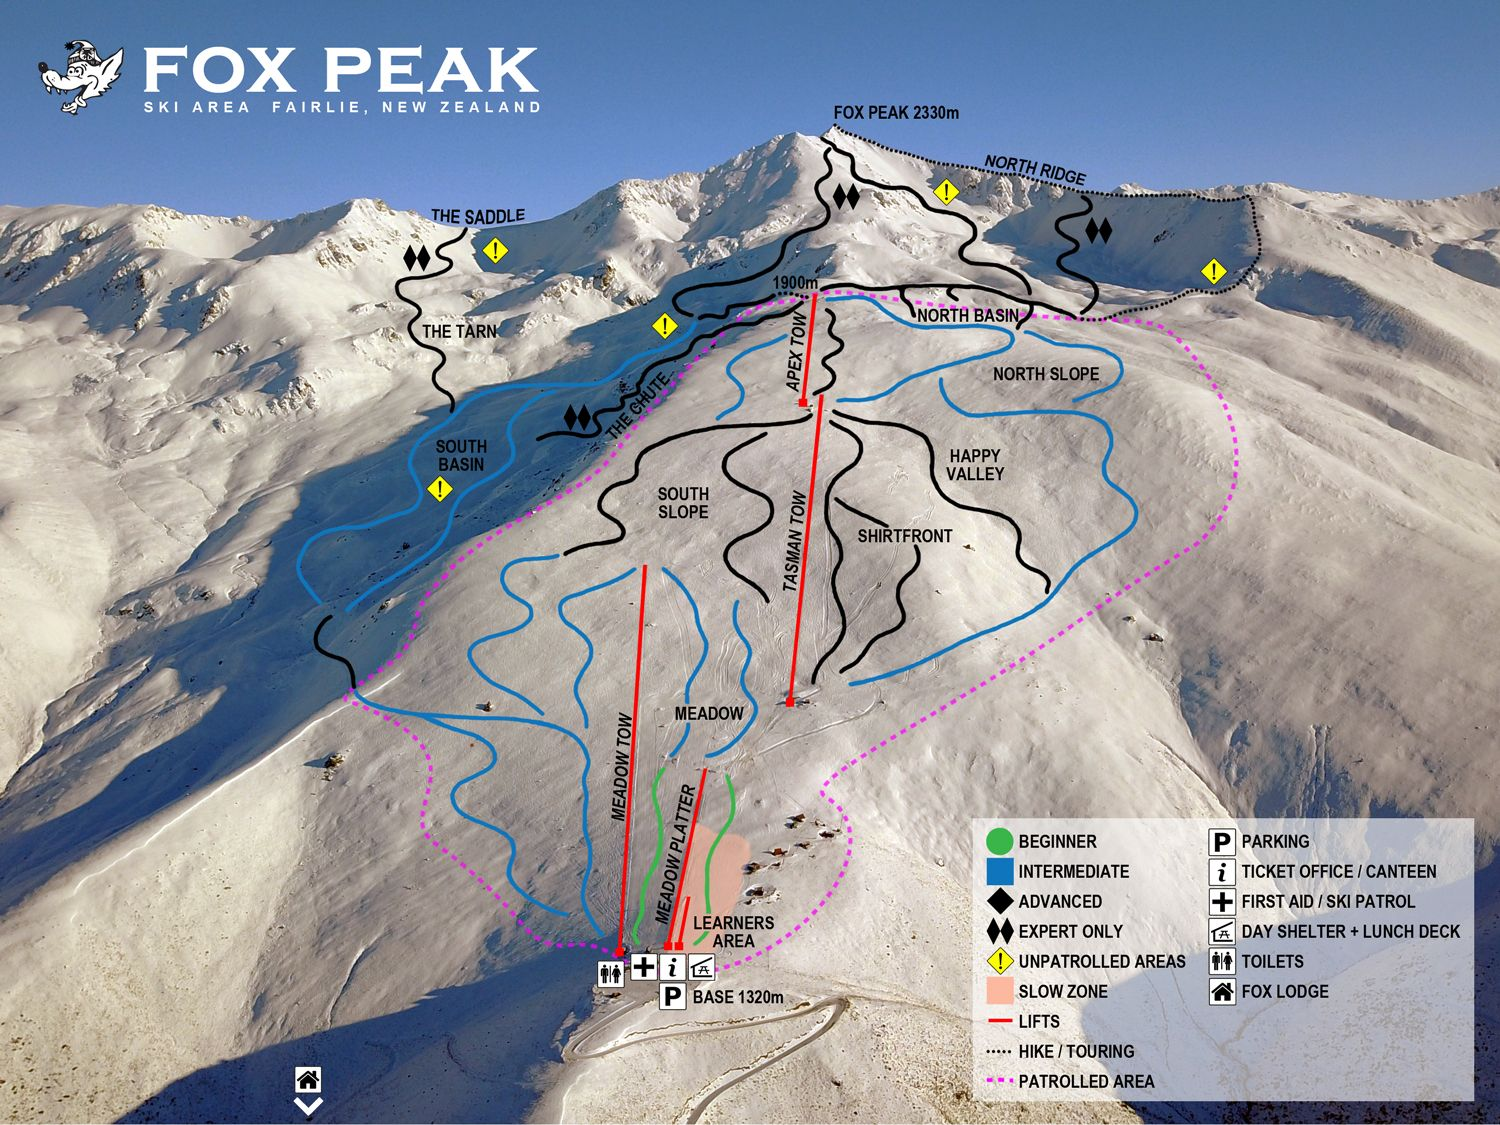 Fox Peak Piste / Trail Map